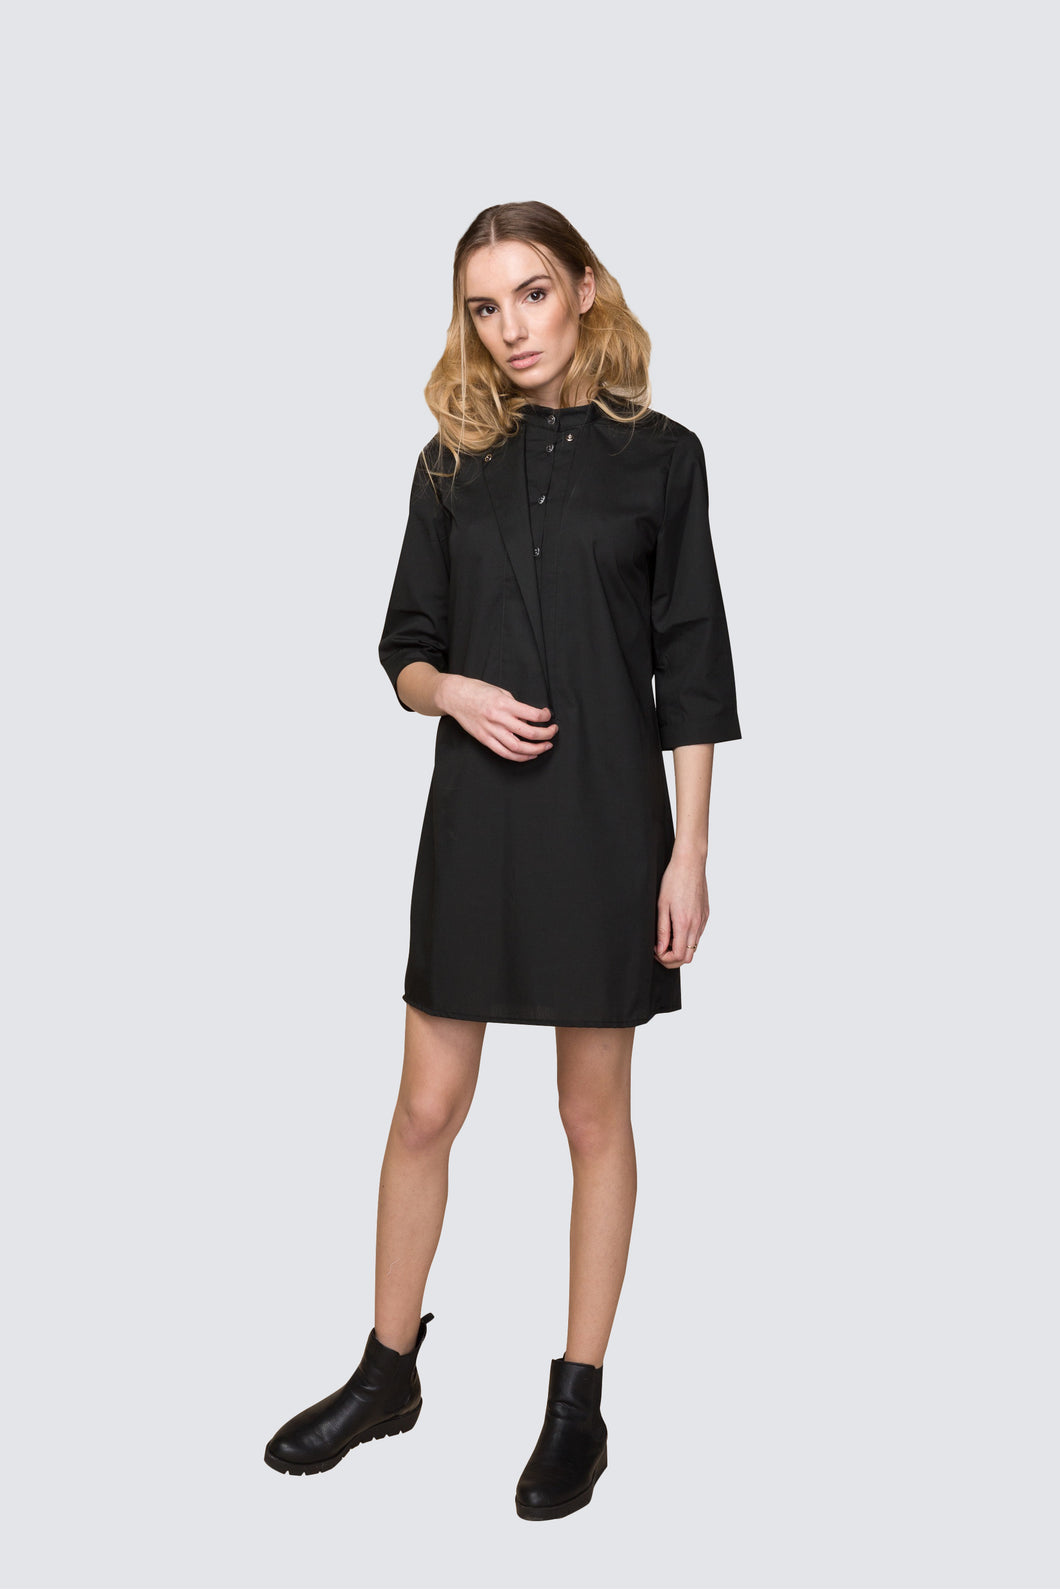 Black Poplin Mini Shop now: Acurrator minimalist RTW brand - Black Poplin Mini Shirt Dress